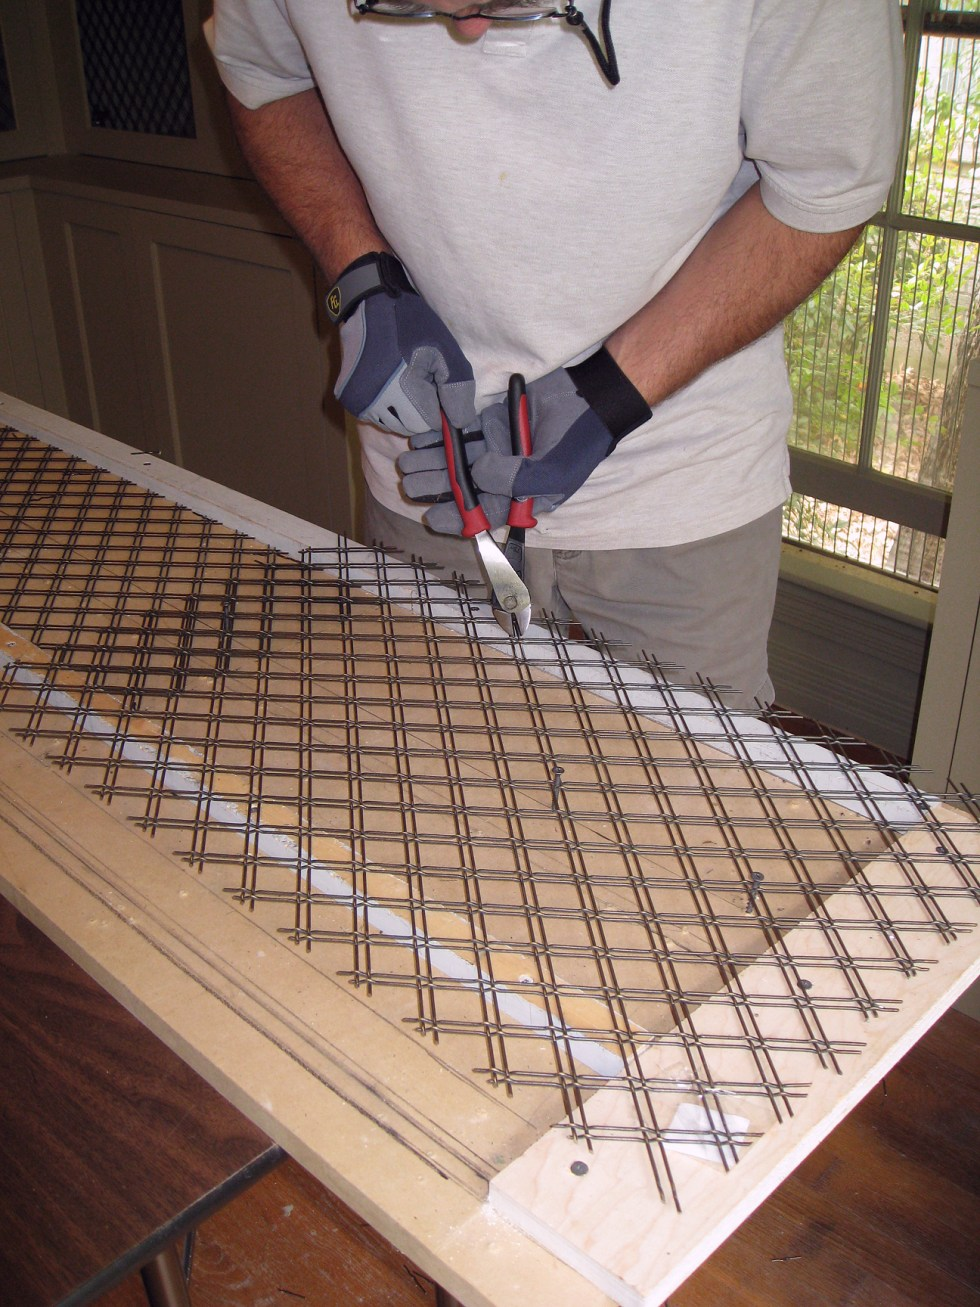 (above) Bert, my general contractor, is cutting the wire to size using an adjustable template.